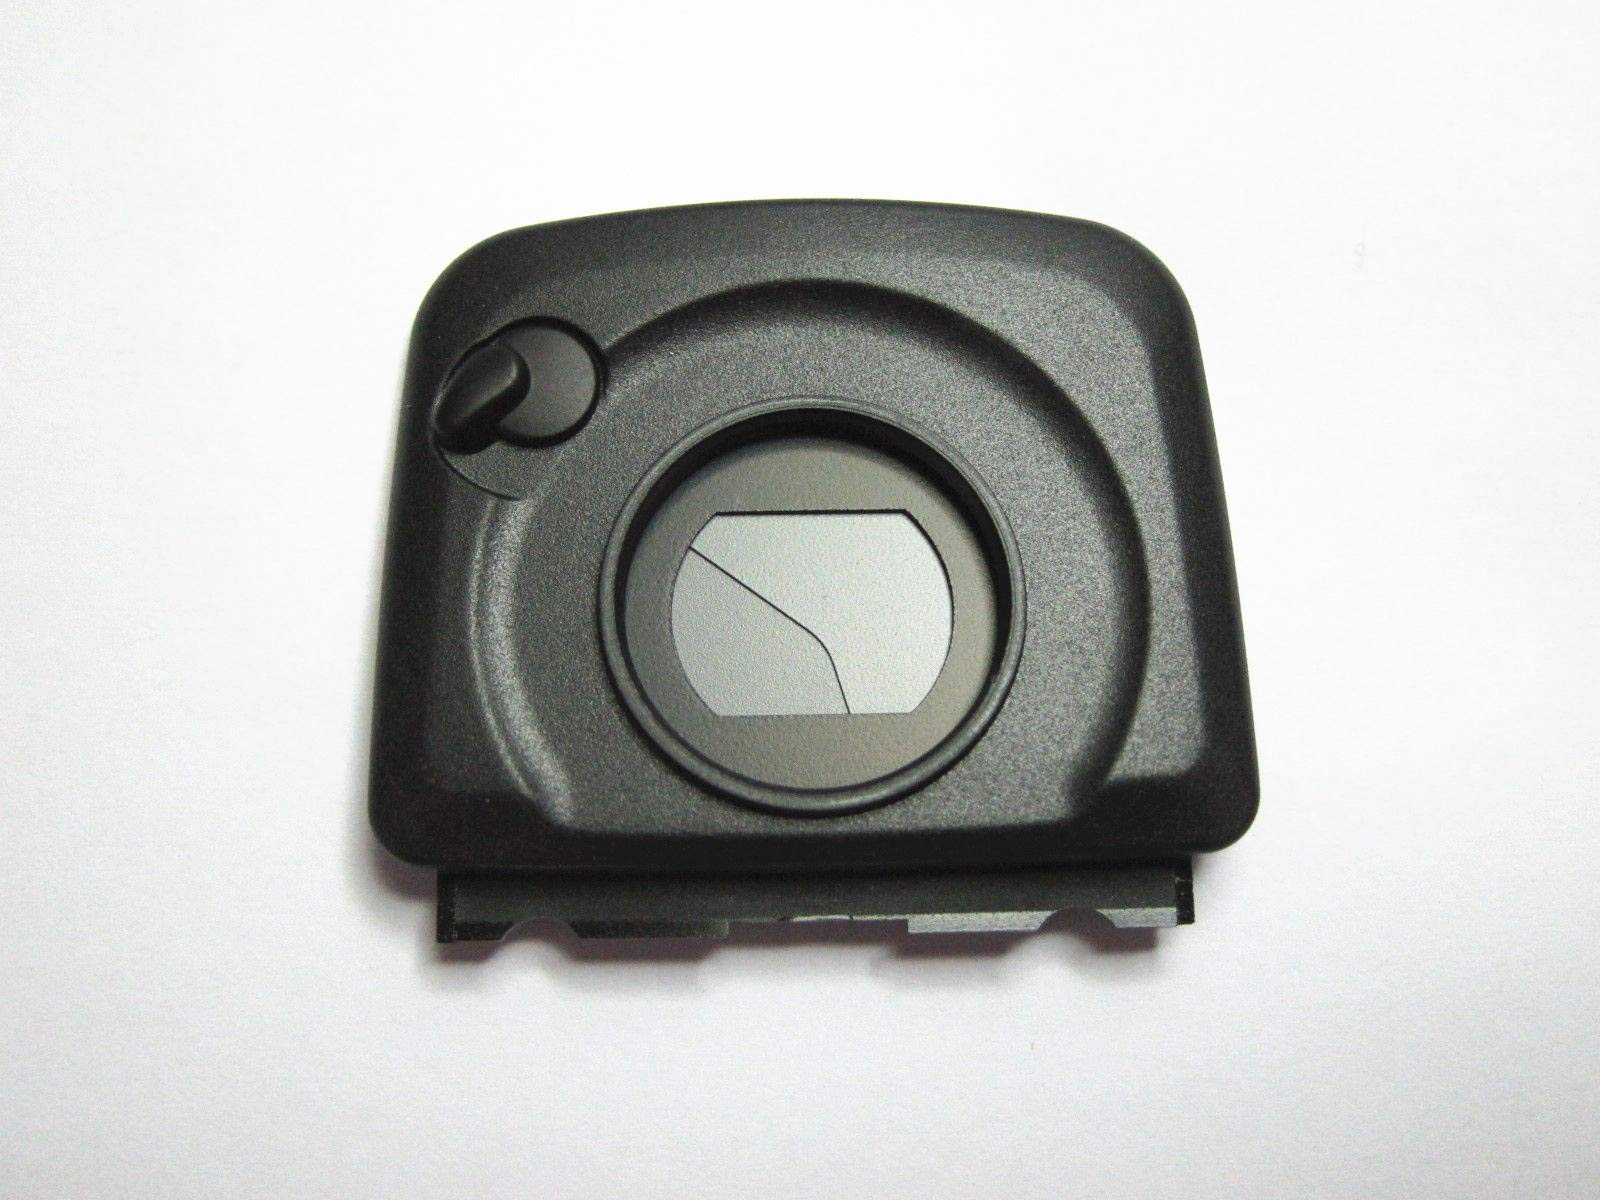 Replacement New Viewfinder Eyepiece Cover Mount Cover Frame Shell 1142N for Nikon D810 D810A